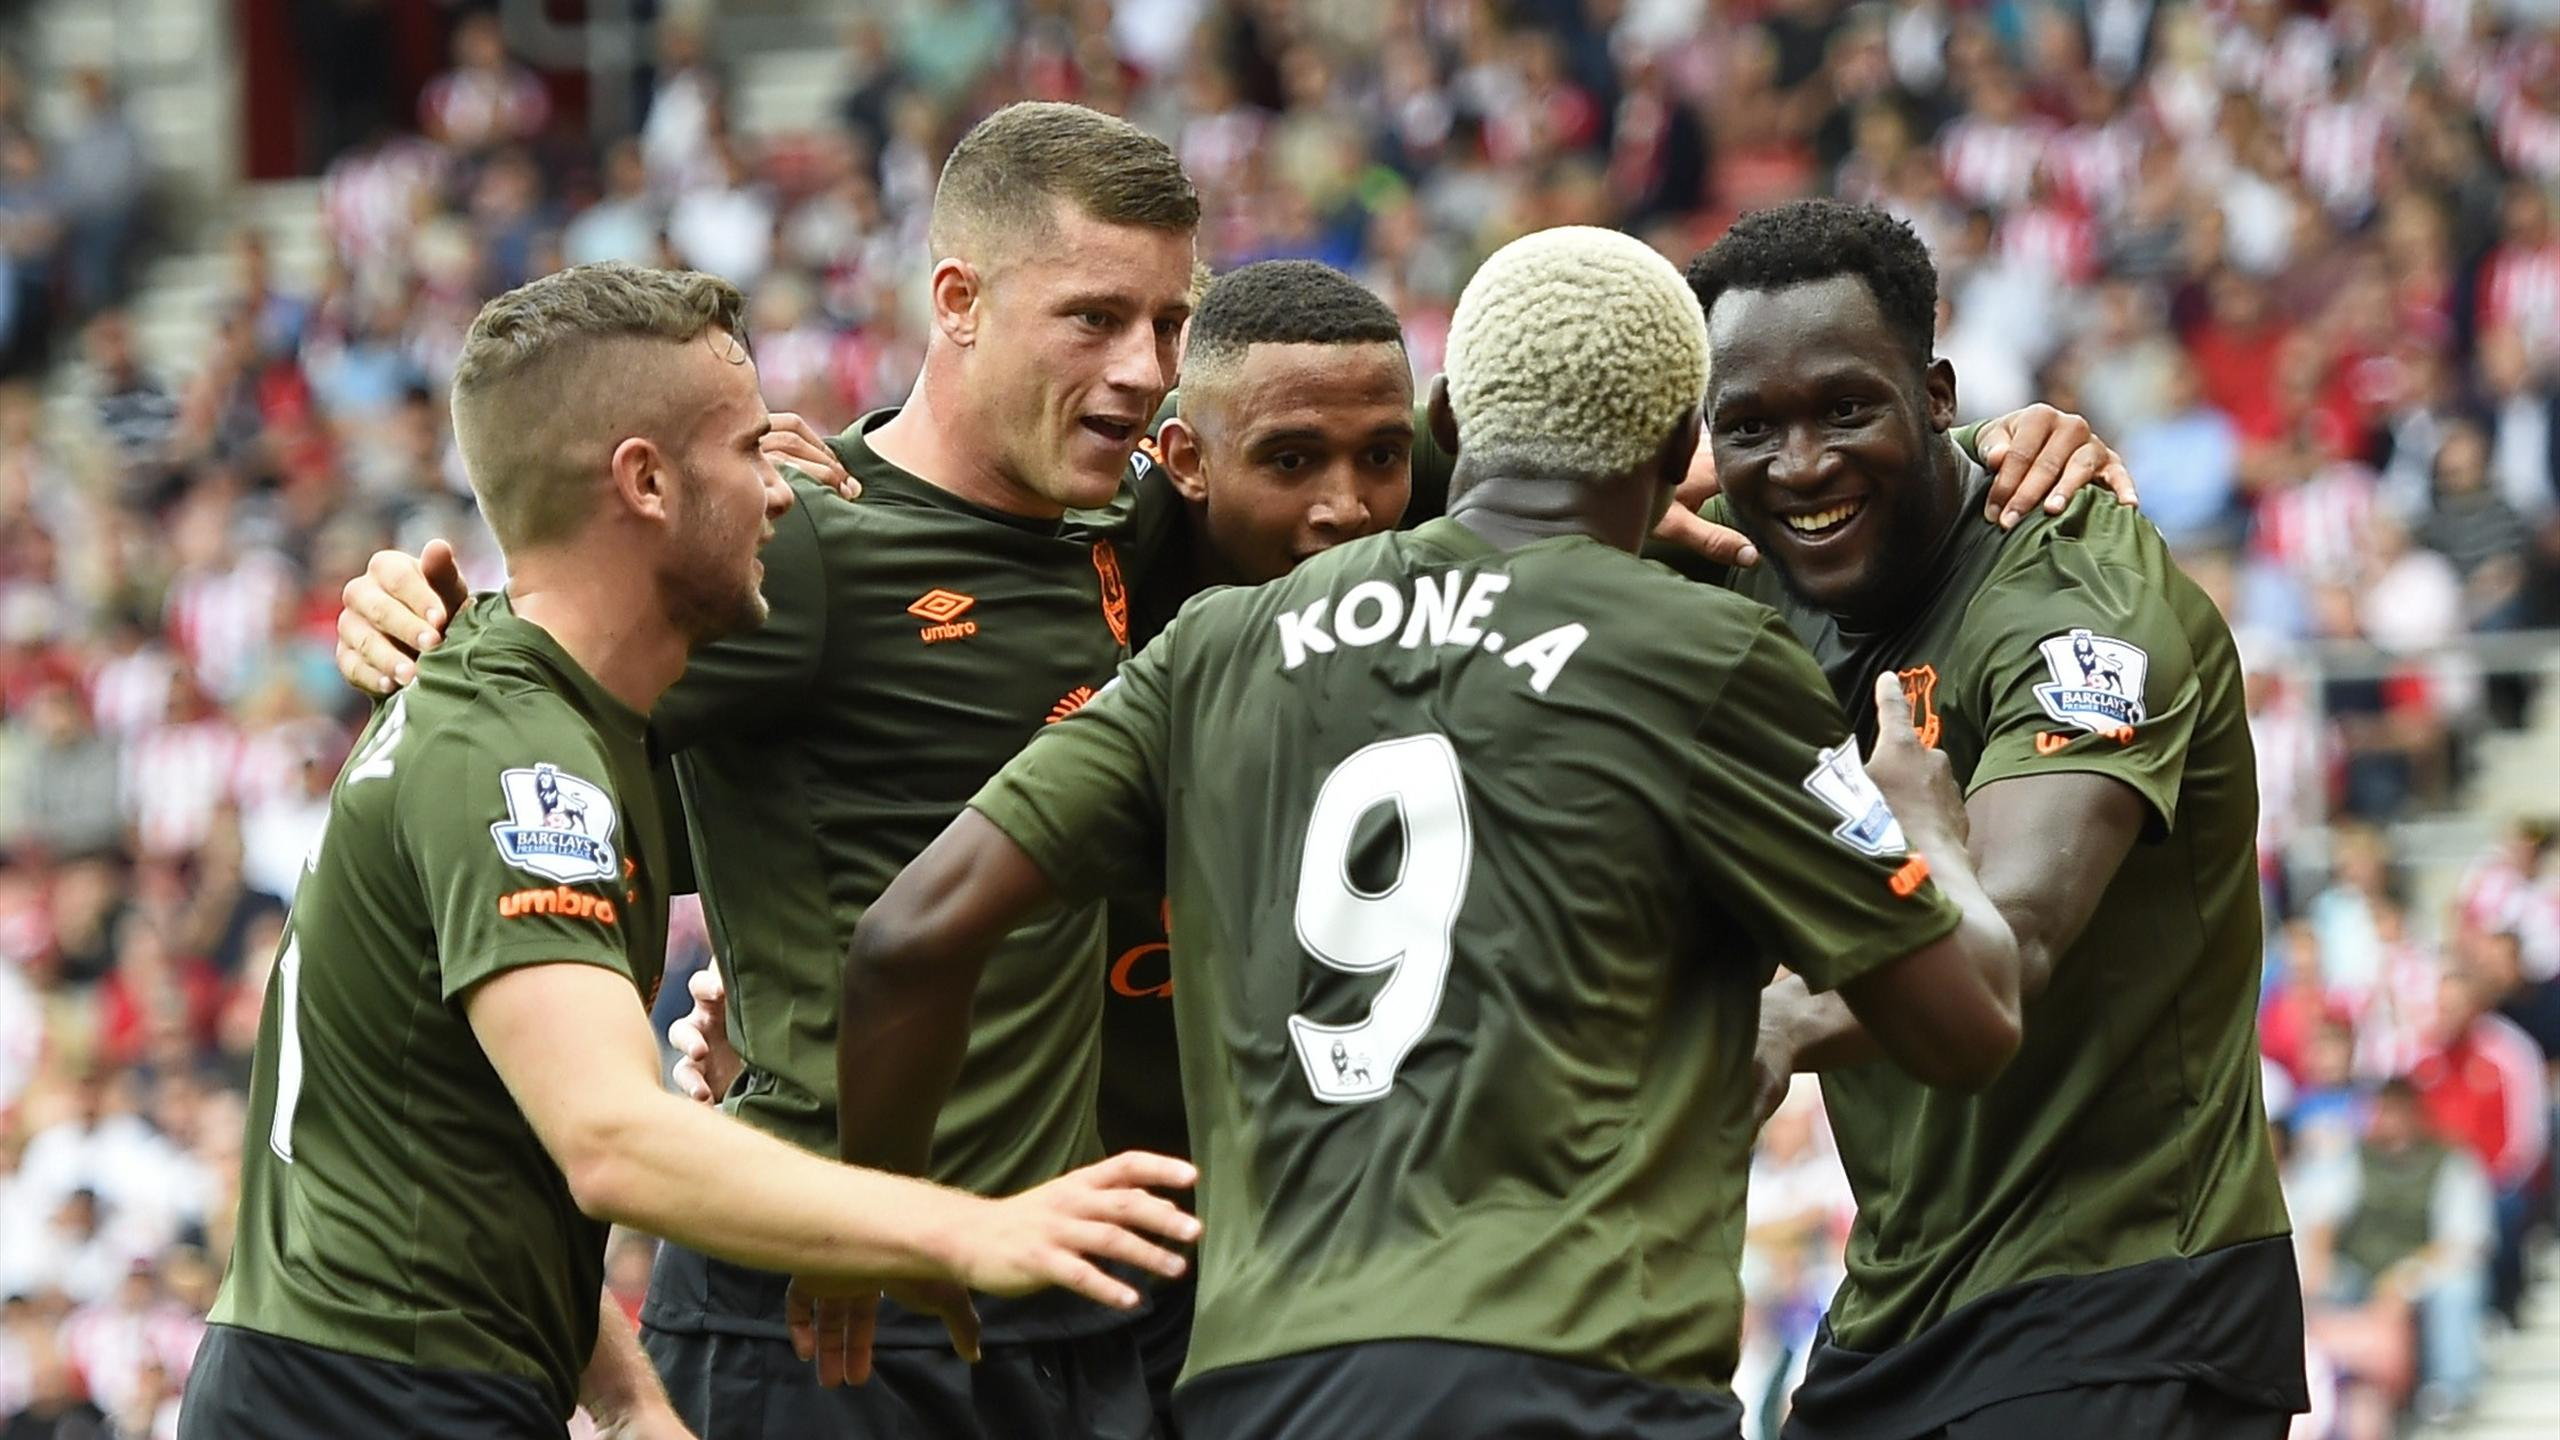 Romelu Lukaku celebrates with Ross Barkley and other team mates after scoring for Everton